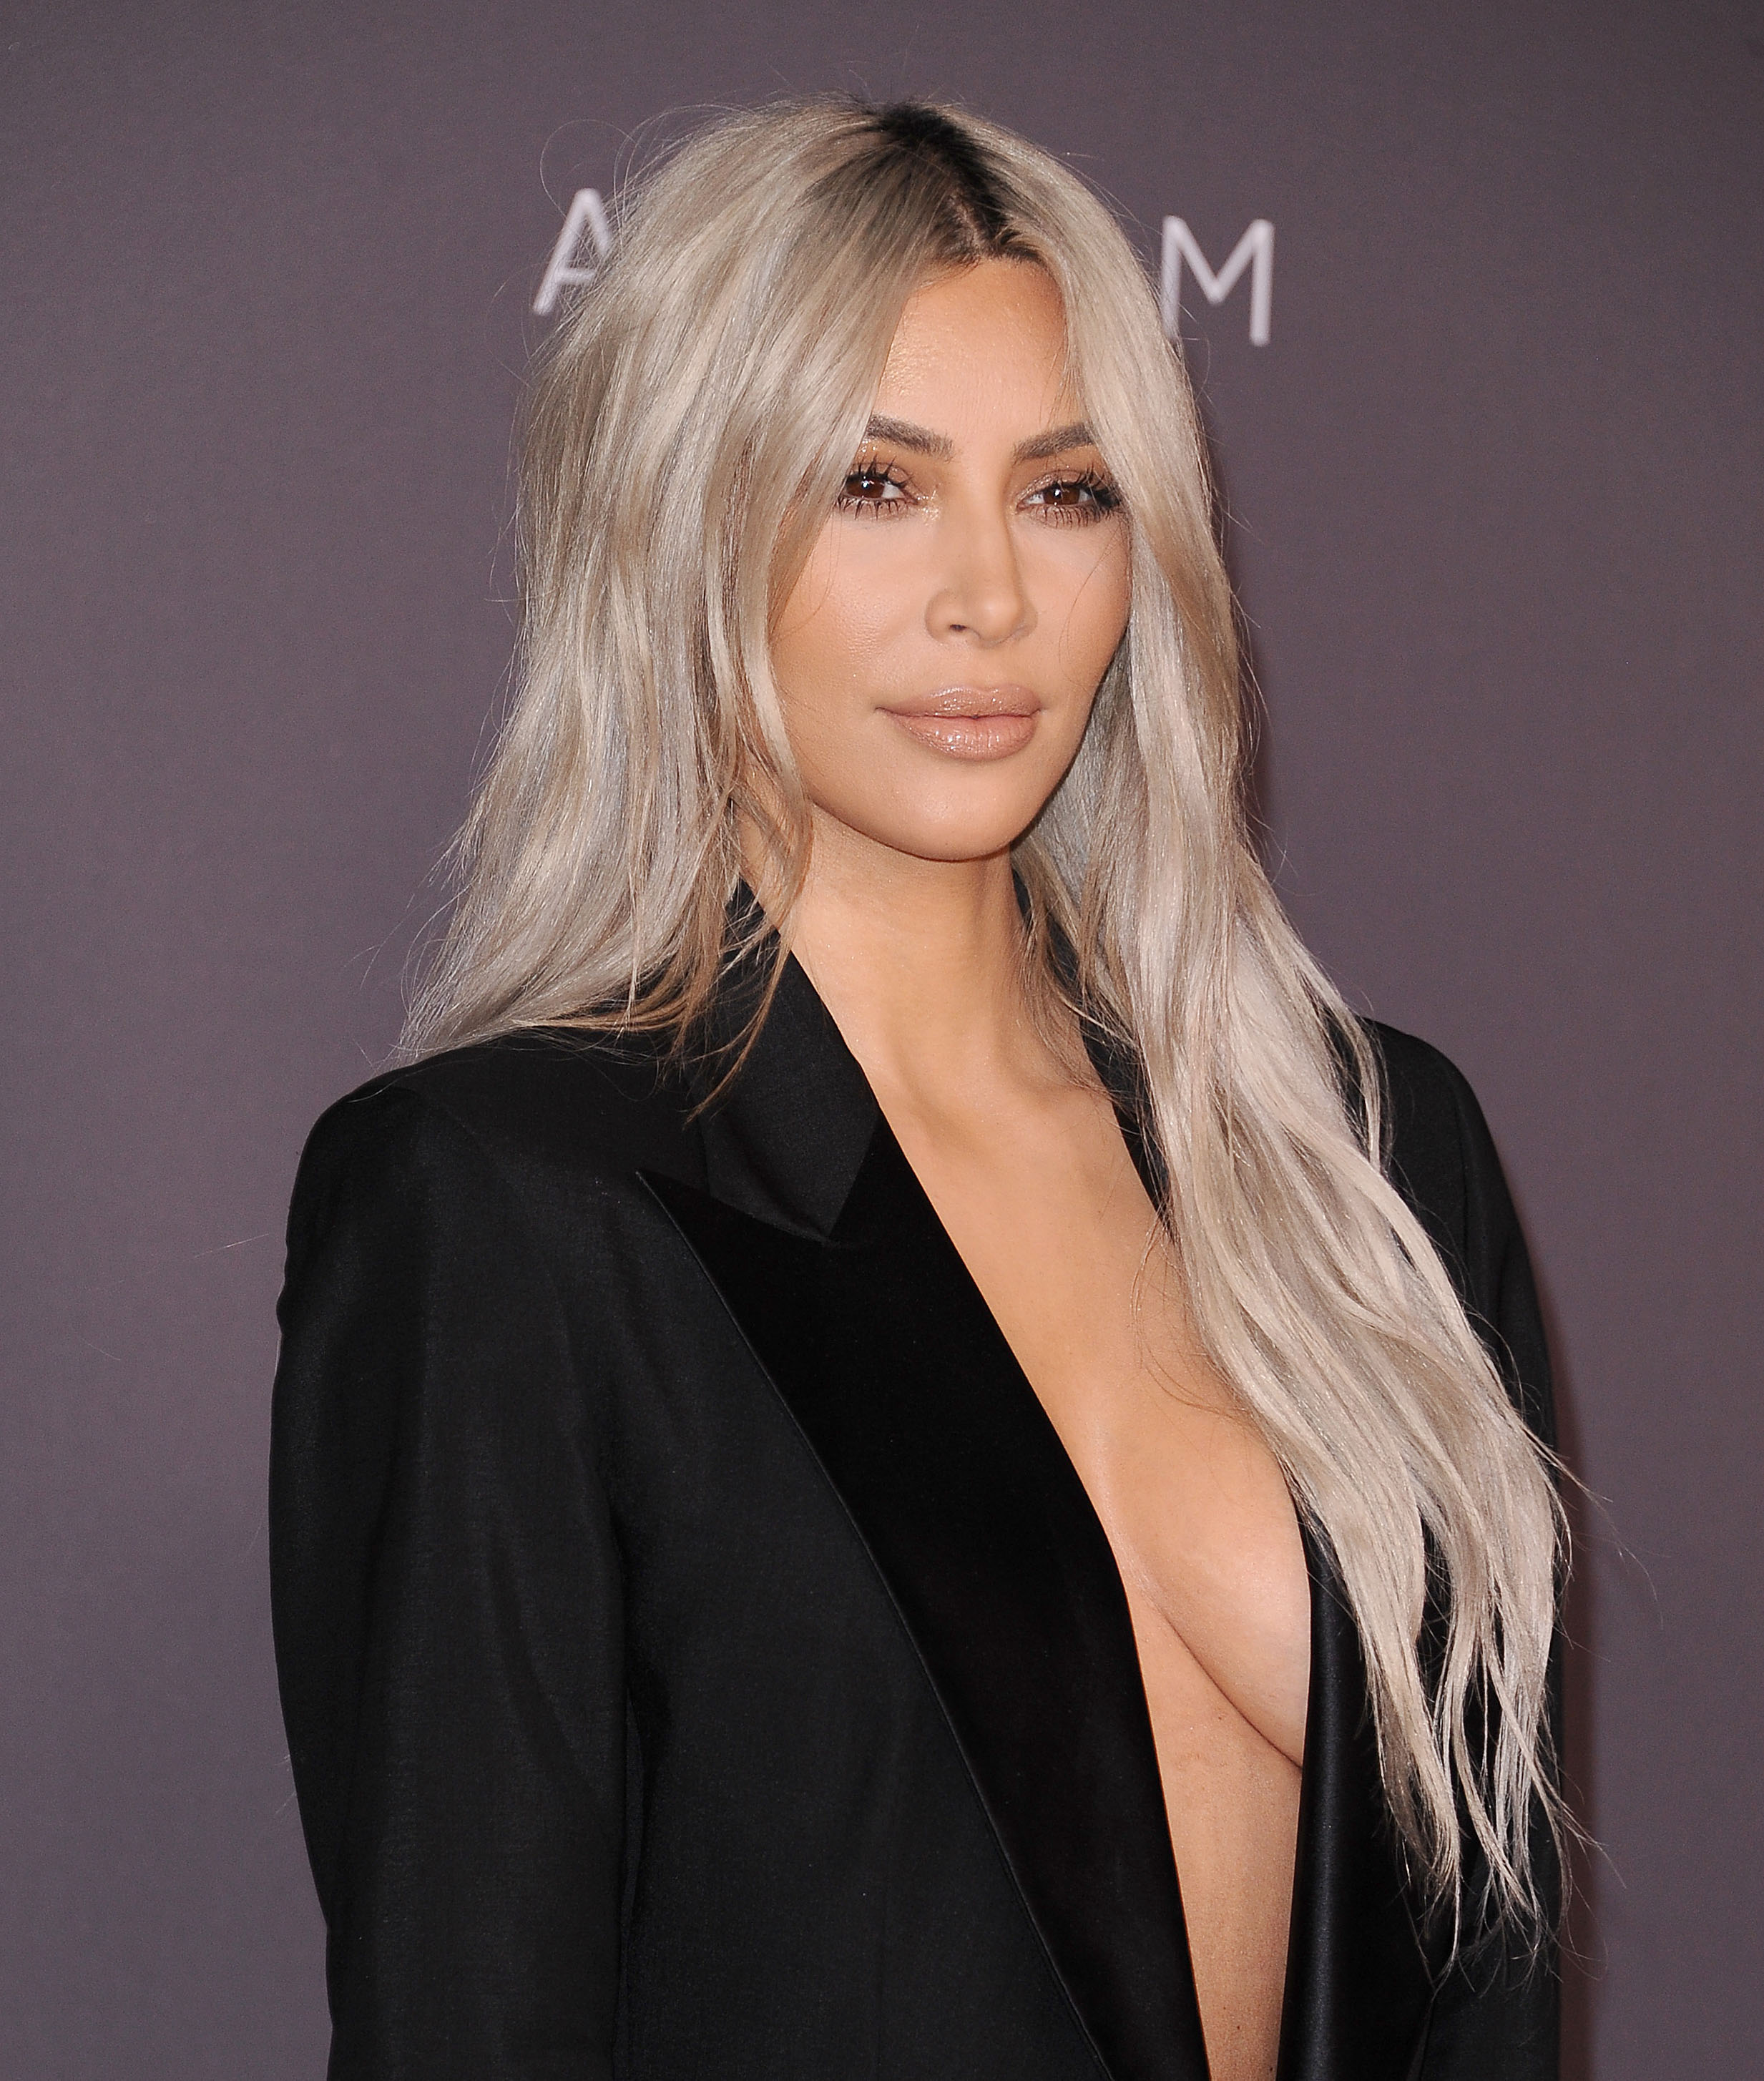 Kim Kardashian's next KKW Beauty launch is going to be smooch-worthy